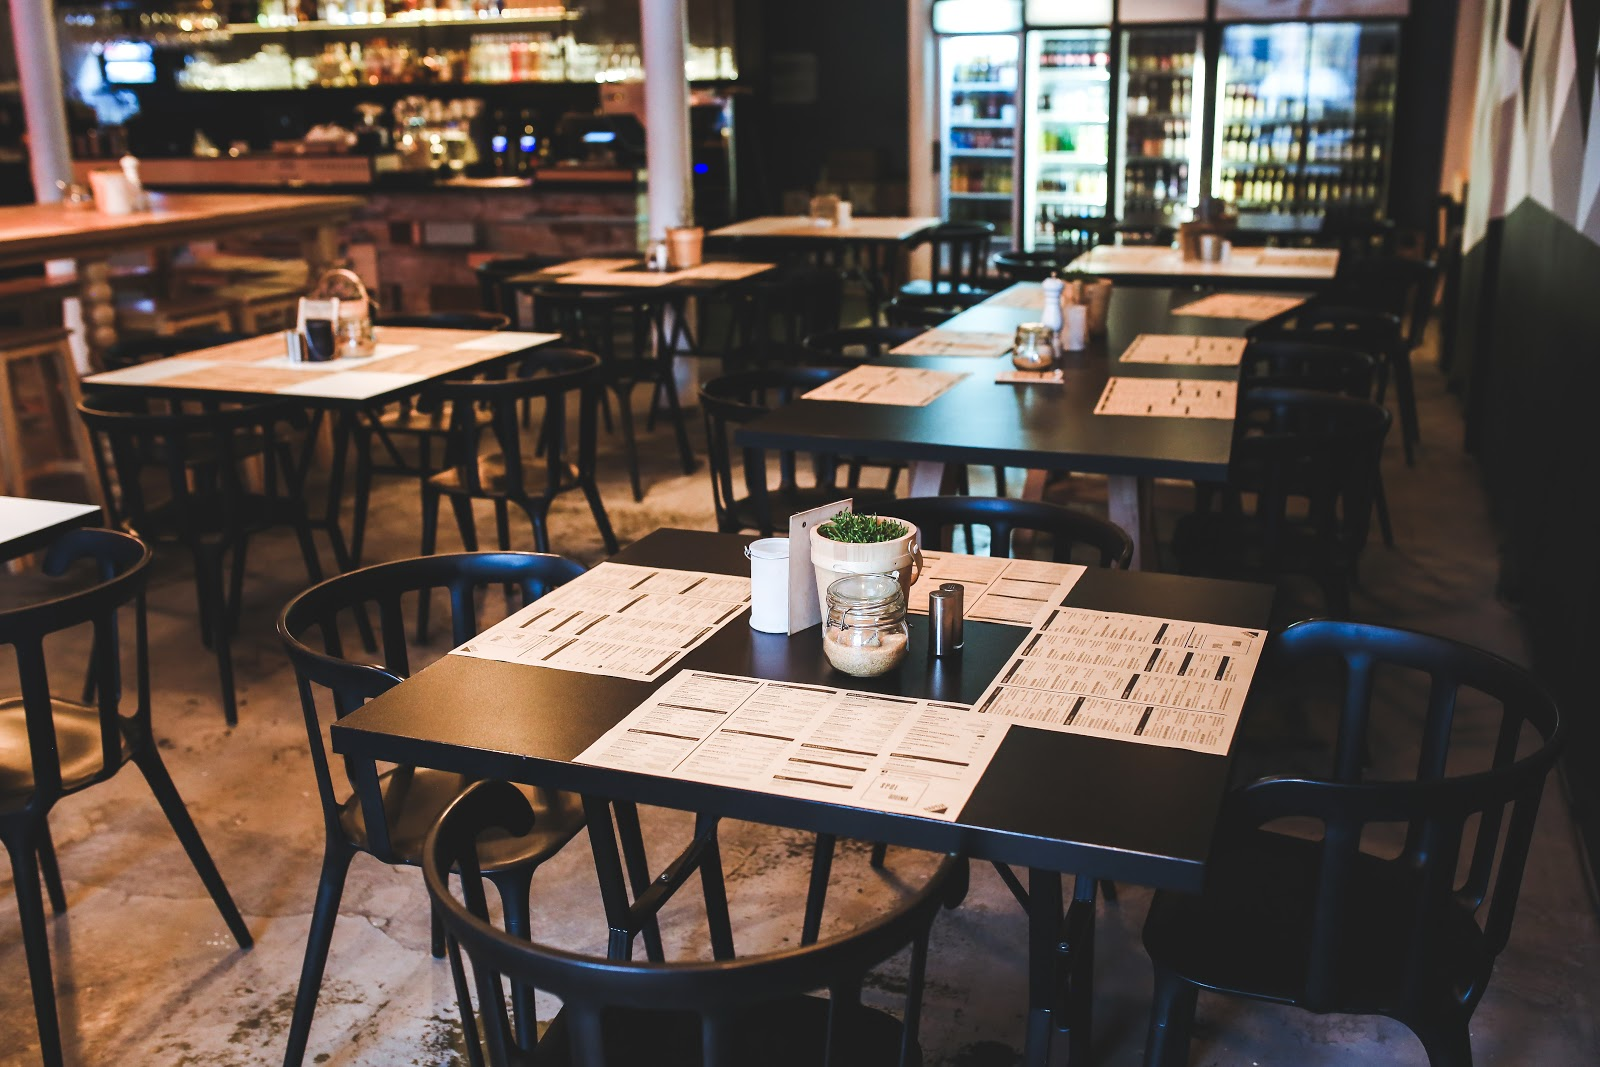 Essential Updates For Restaurant Businesses Following COVID-19